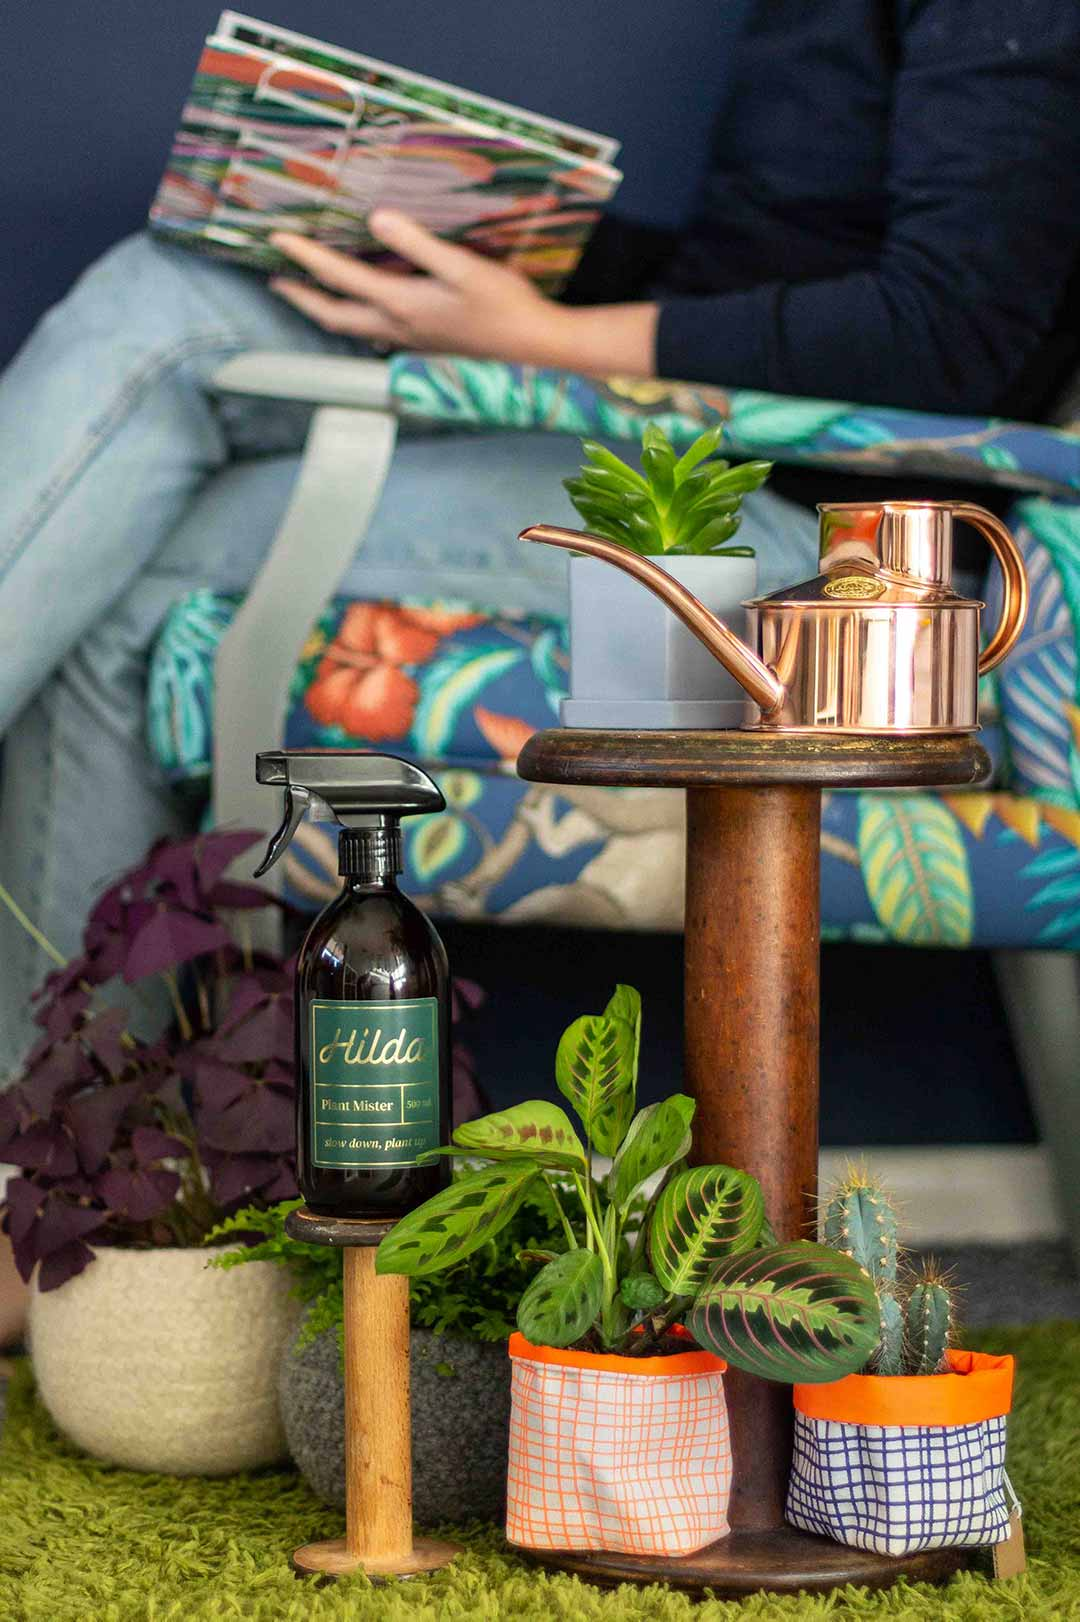 Plants arranged on a side table with a watering can and plant mister. A woman sits in the background on a patterned chair reading a book.